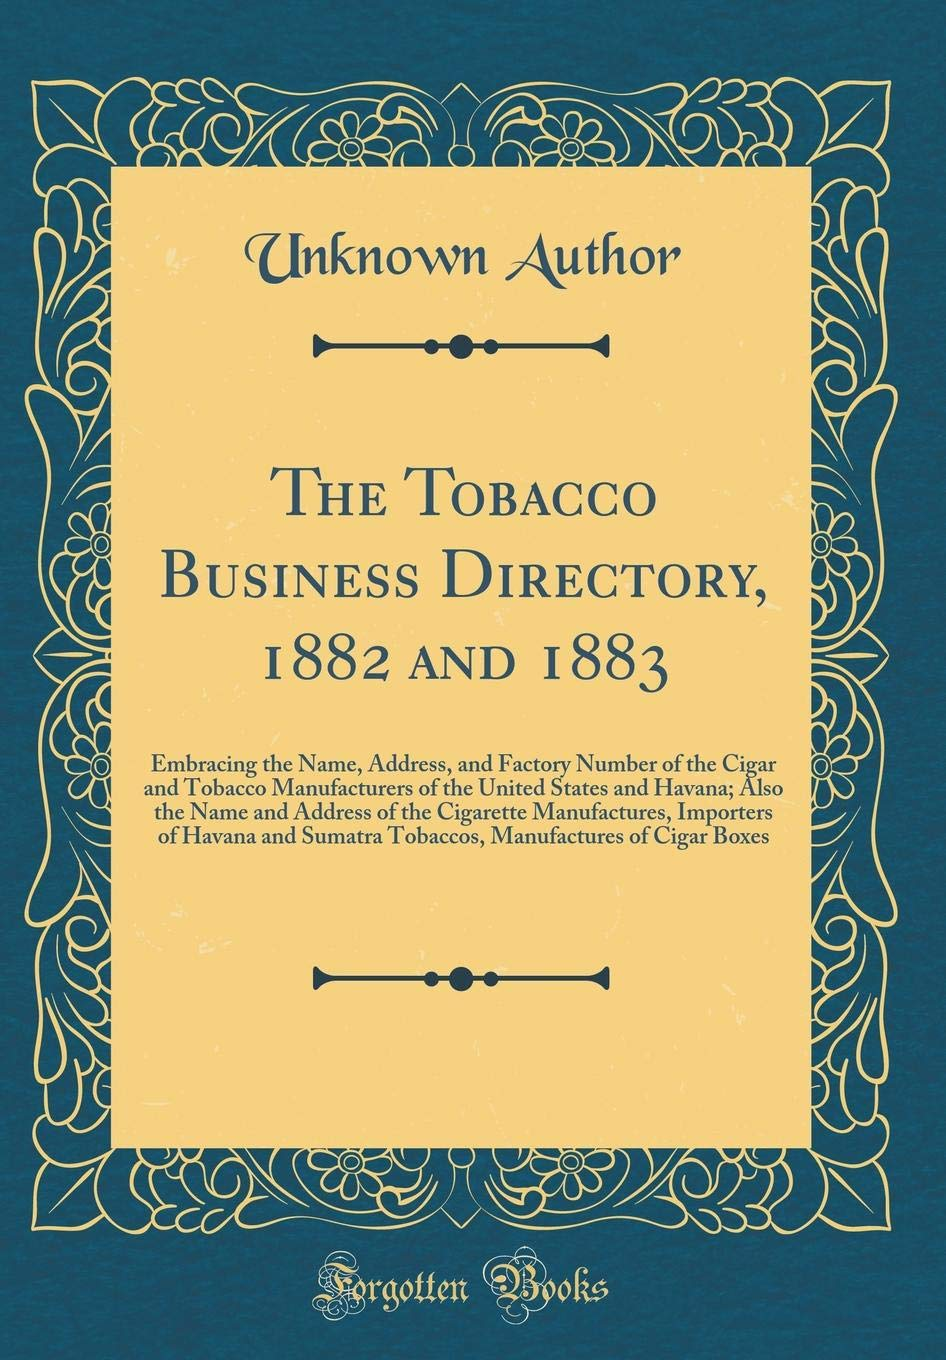 The Tobacco Business Directory, 1882 and 1883: Embracing the